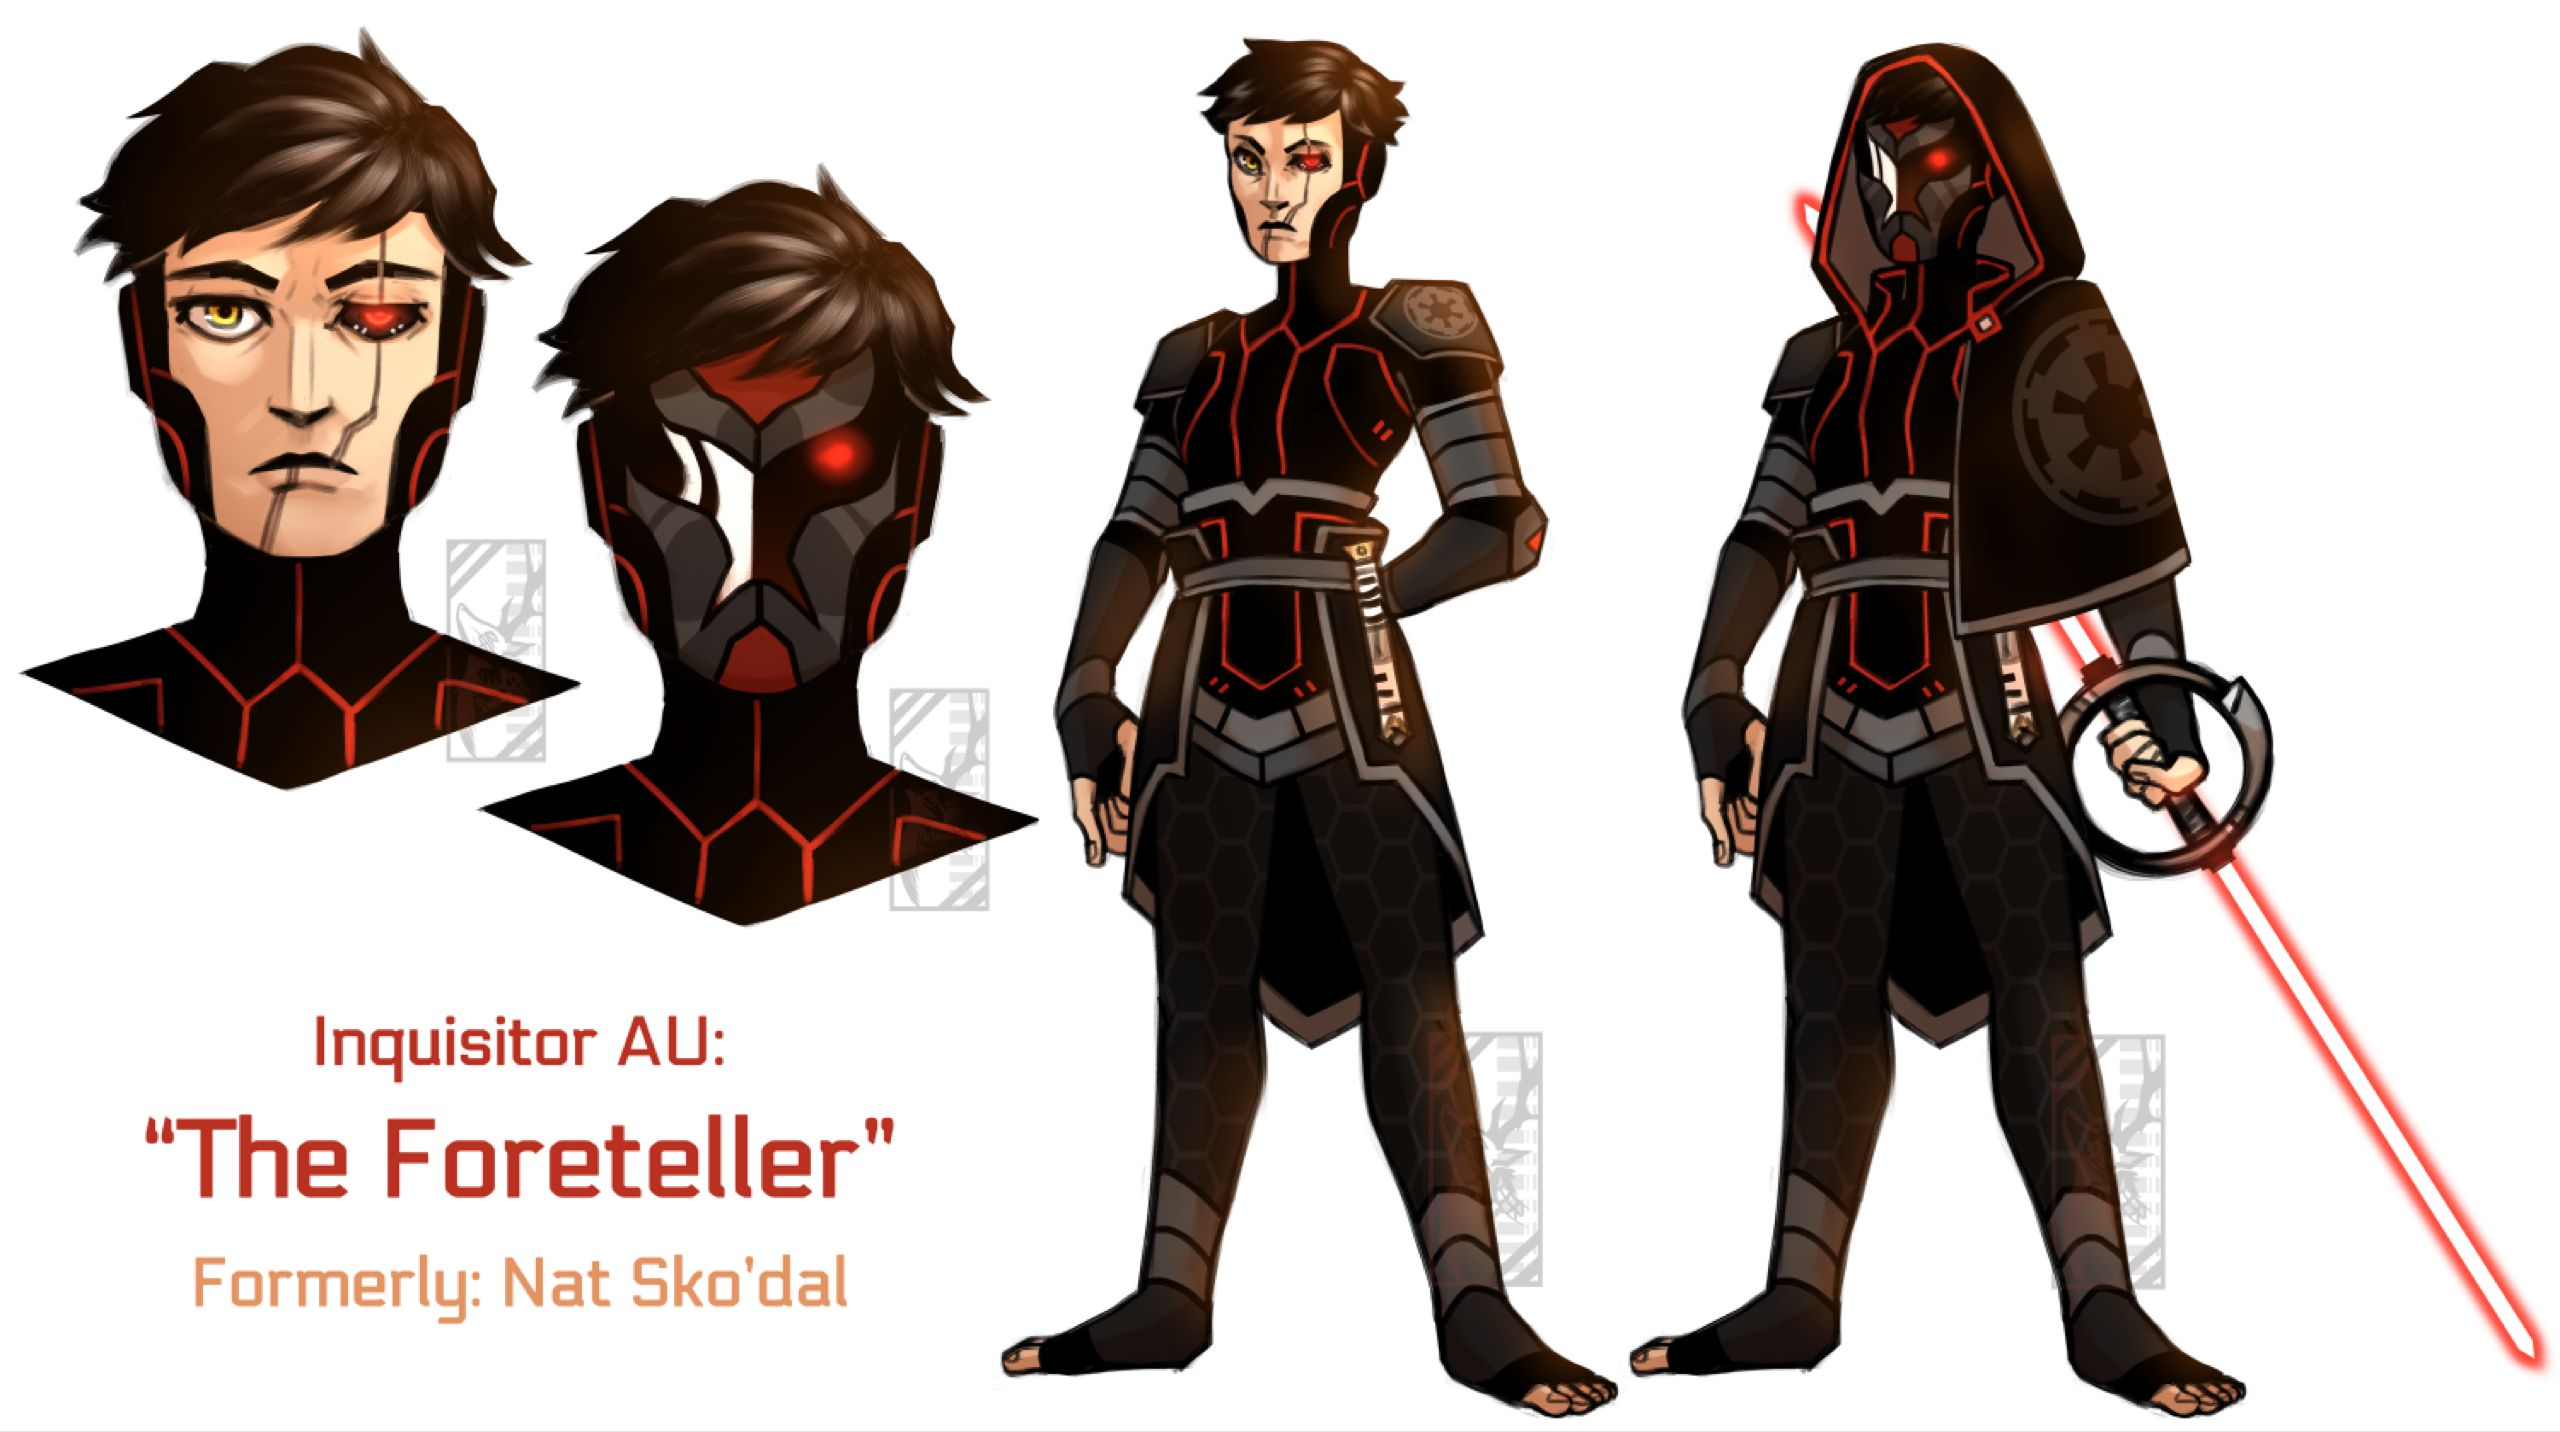 Inquisitor Au By Deer Head On Deviantart Star Wars Characters Pictures Star Wars Villains Star Wars Rpg